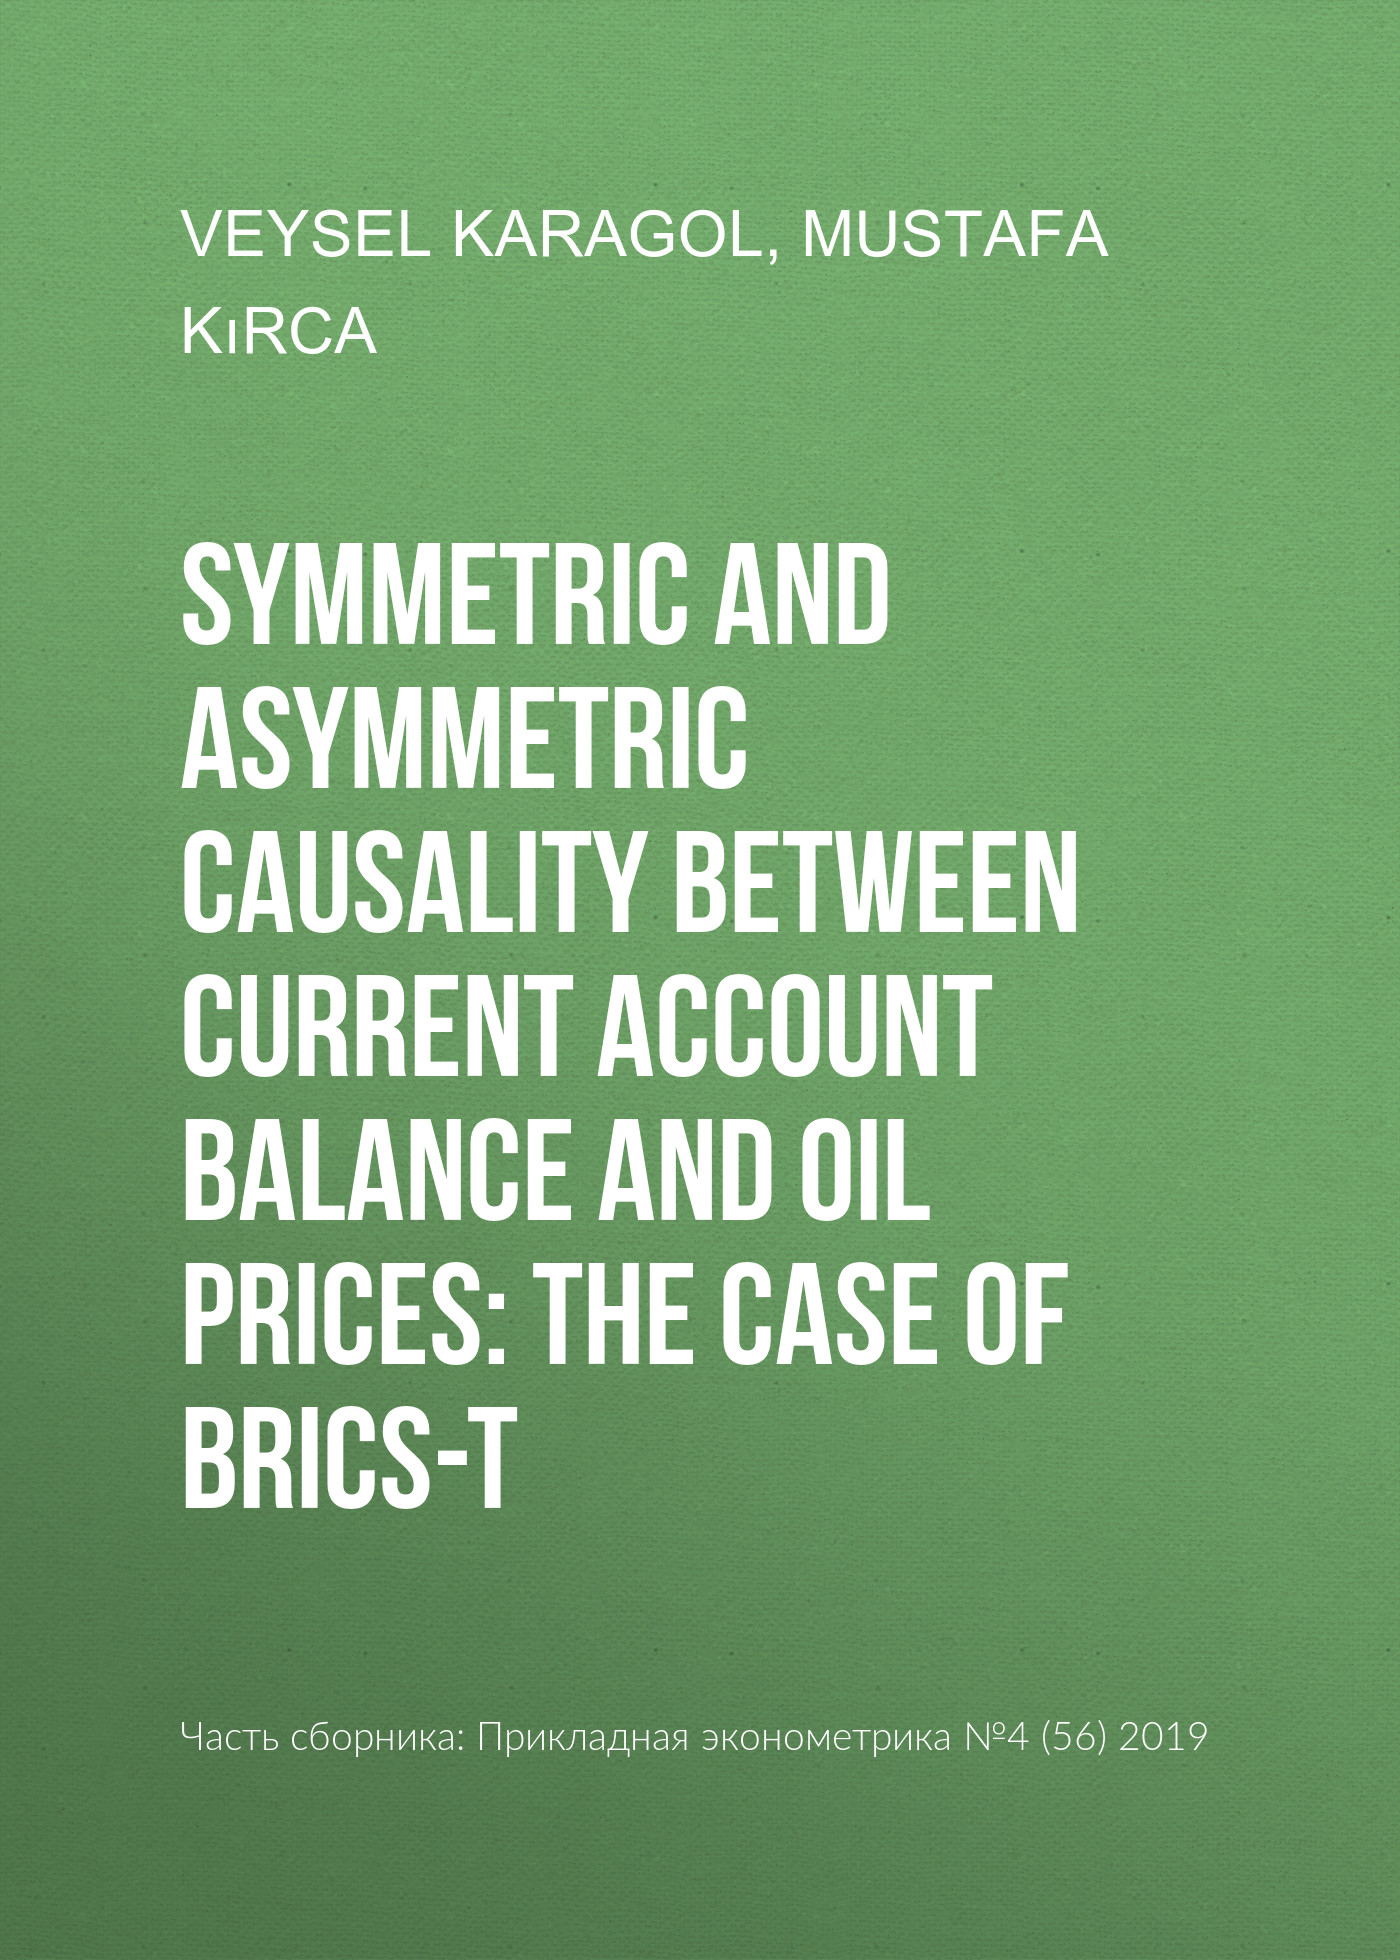 Mustafa Kırca Symmetric and asymmetric causality between current account balance and oil prices: The case of BRICS-T